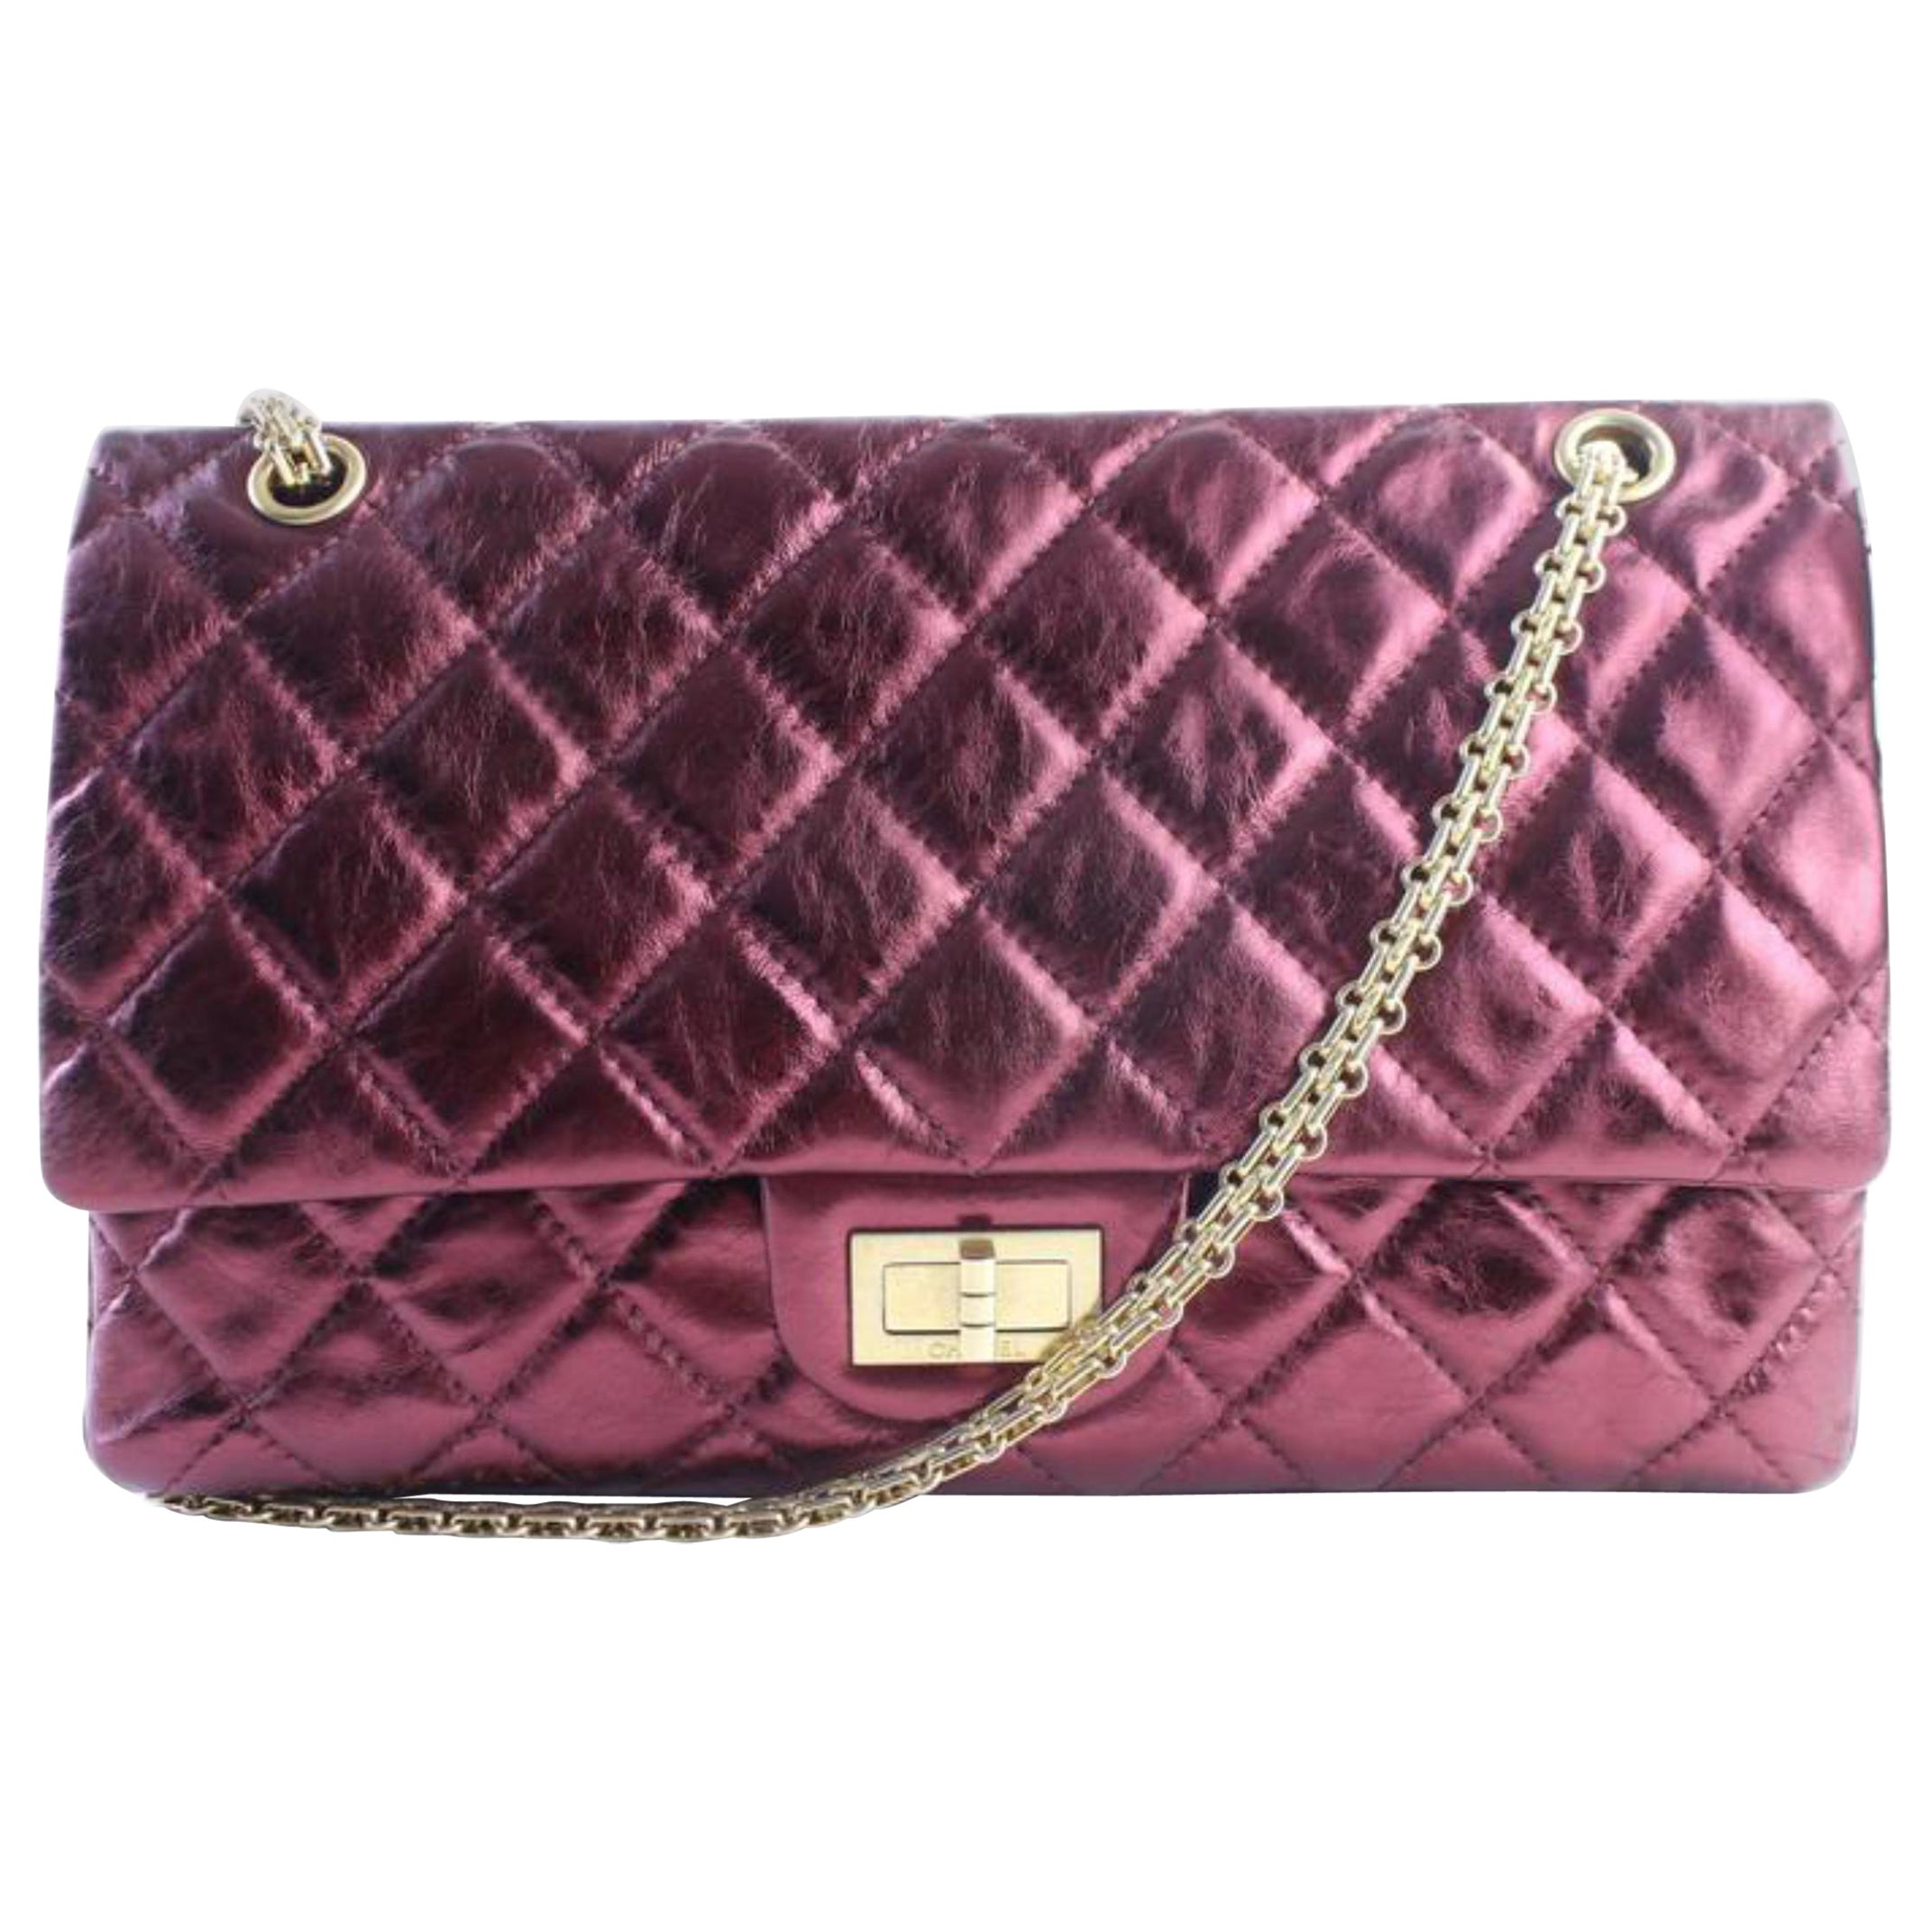 f8681fbb23a530 Chanel 2.55 Reissue 227 Flap 11cr0522 Metallic Burgundy Quilted Shoulder  Bag For Sale at 1stdibs